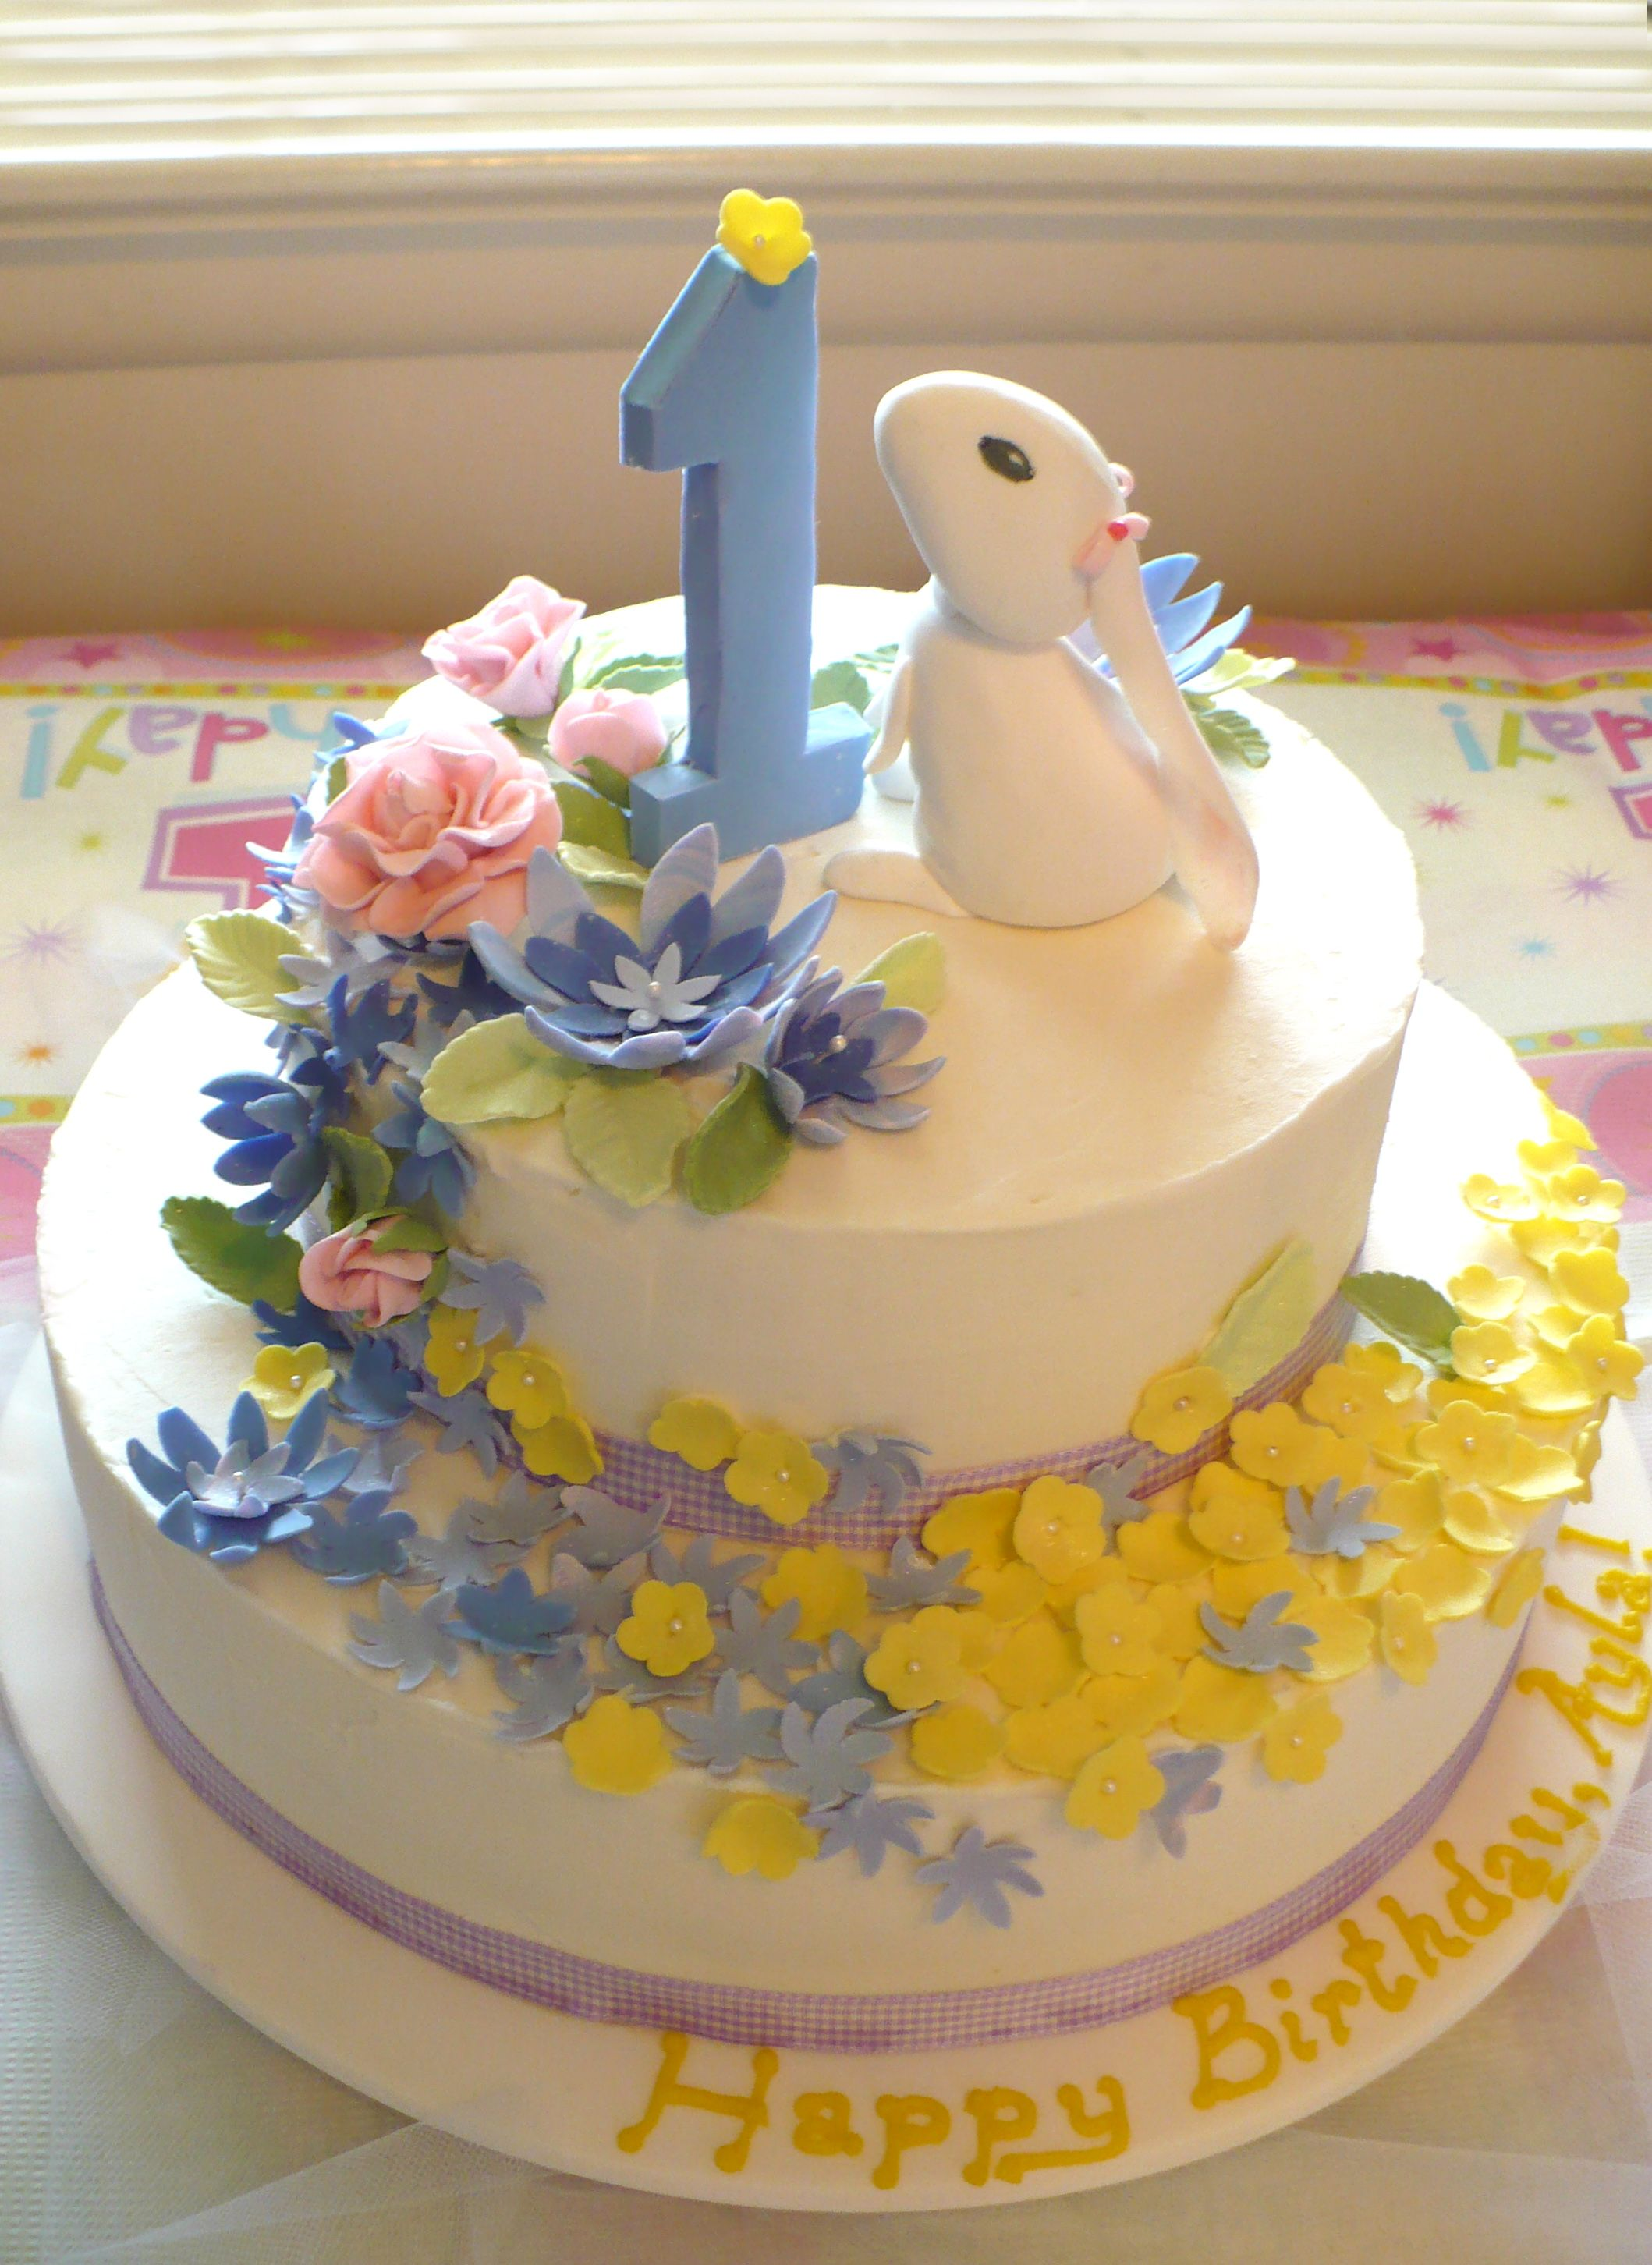 Admirable Easter First Birthday Cake W Fondant Decorations Little Girl Personalised Birthday Cards Veneteletsinfo